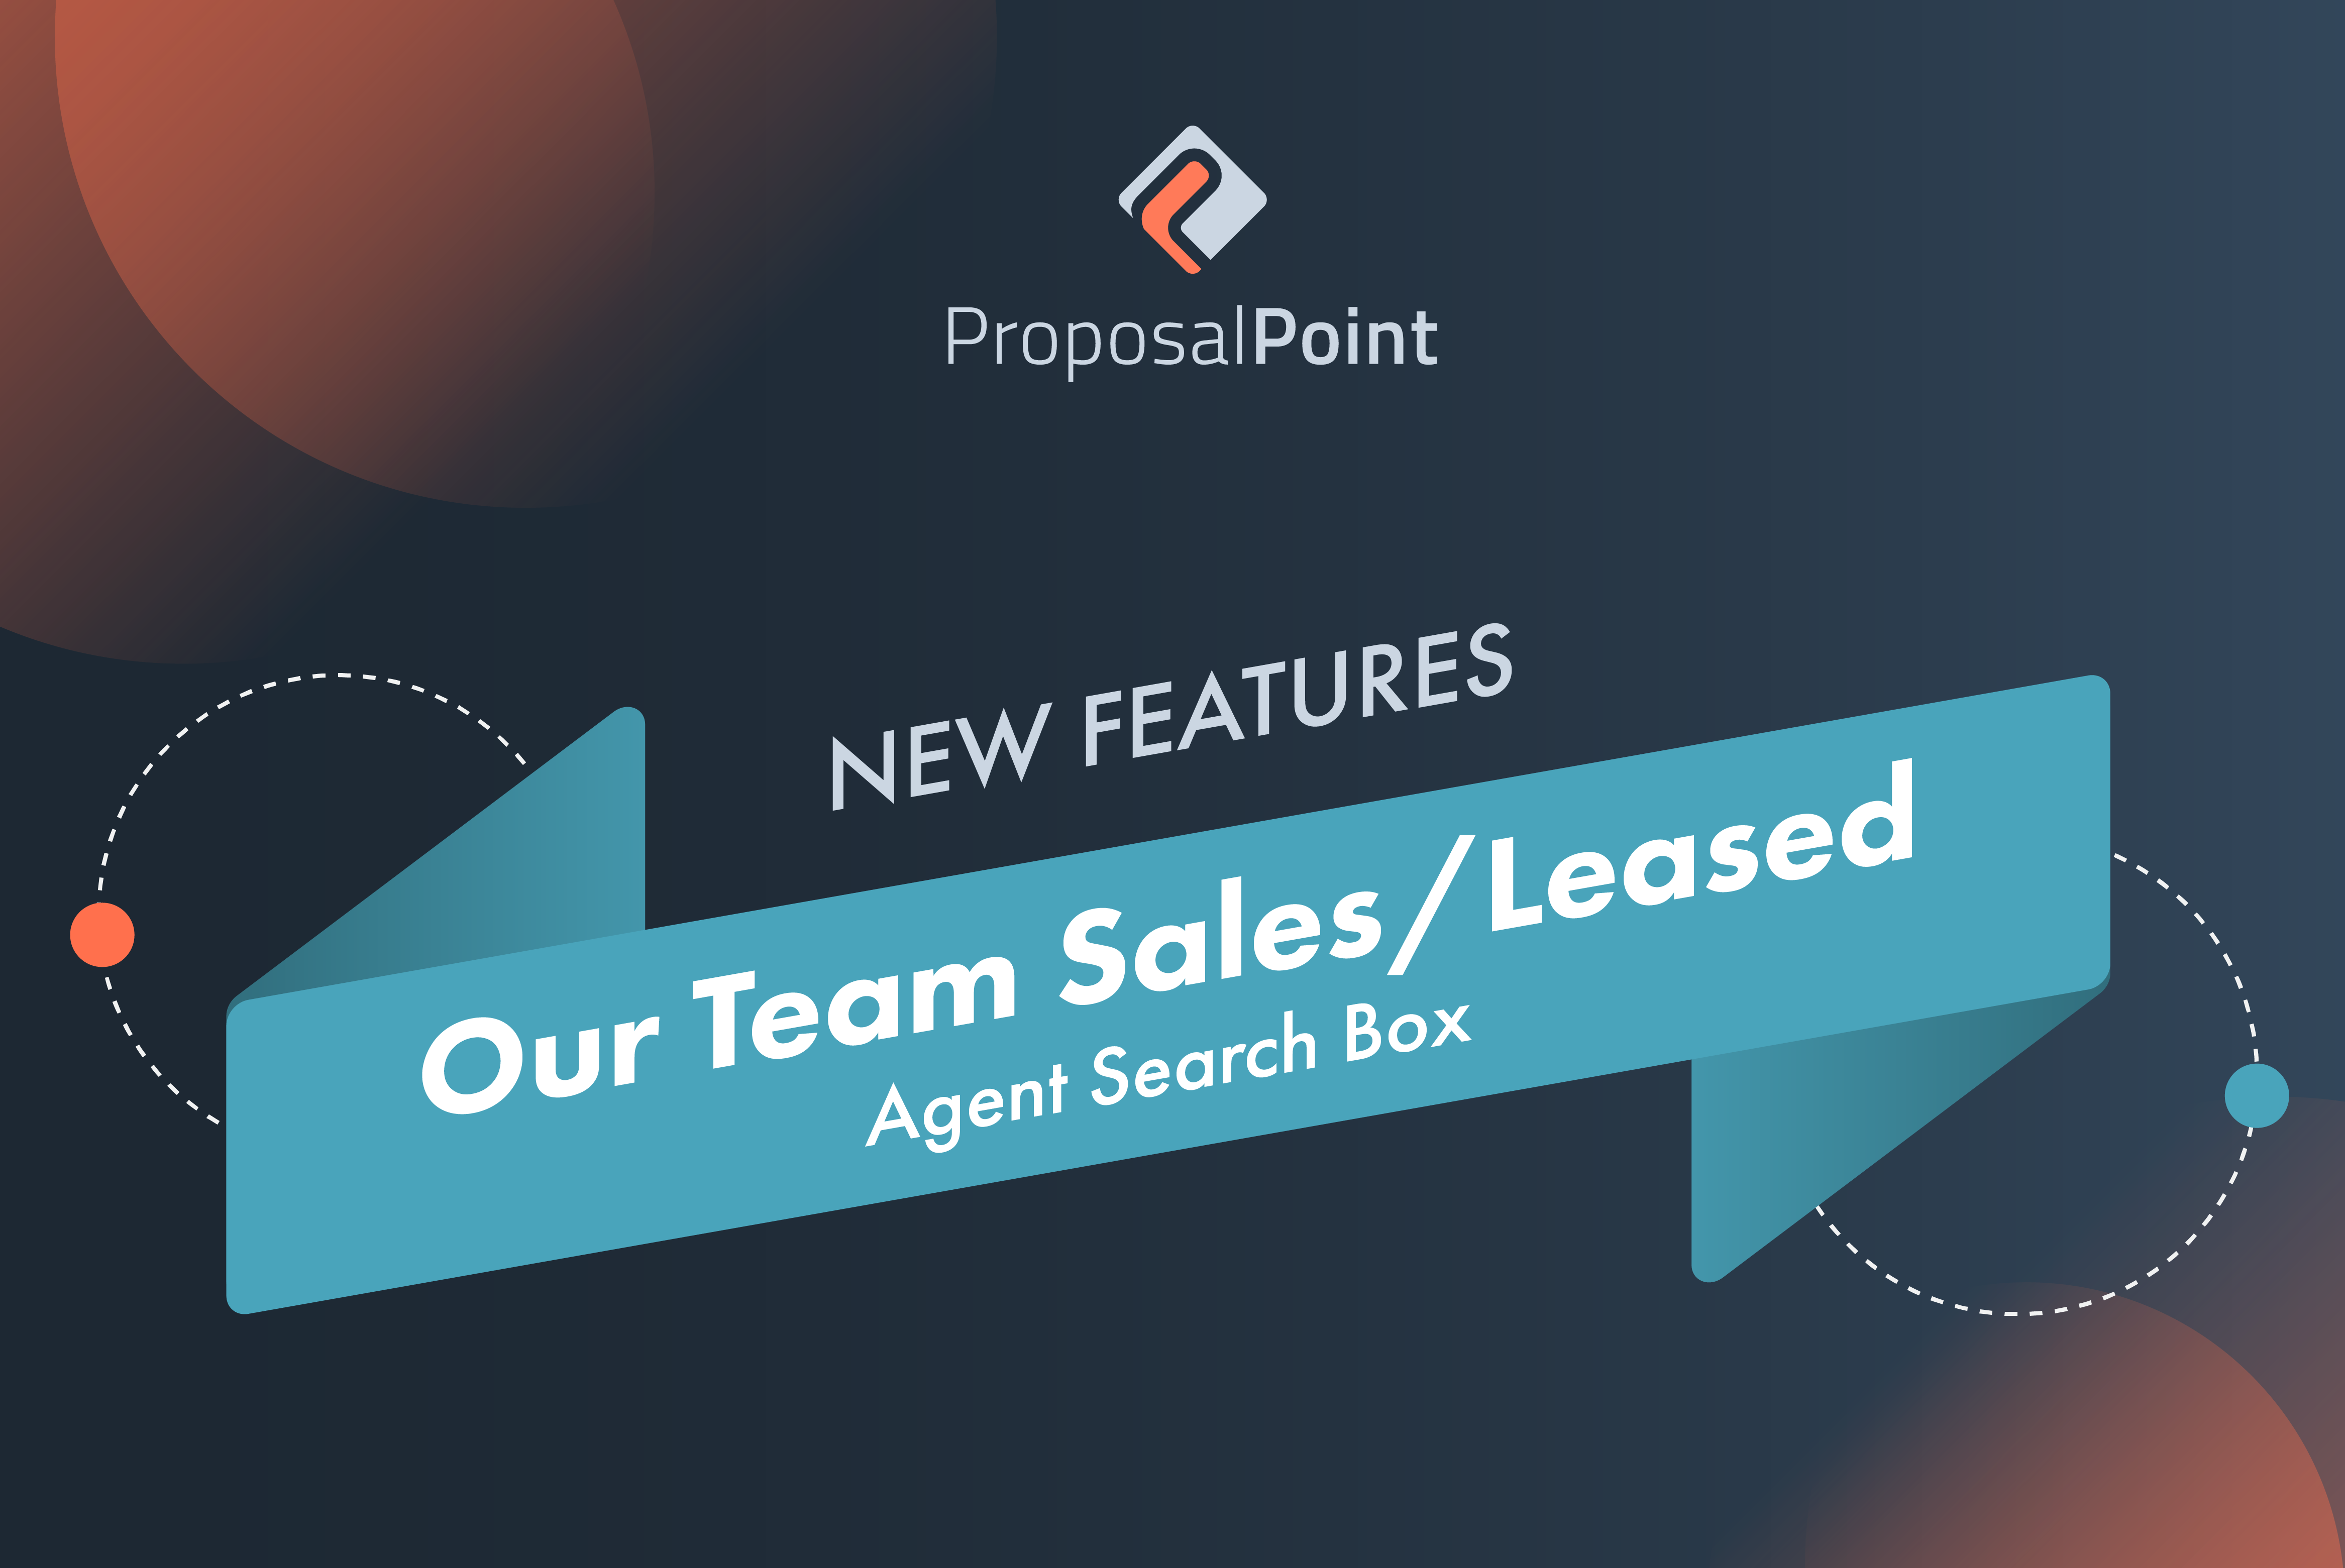 New Feature: Our Team Sales/Leased – Agent Search Box